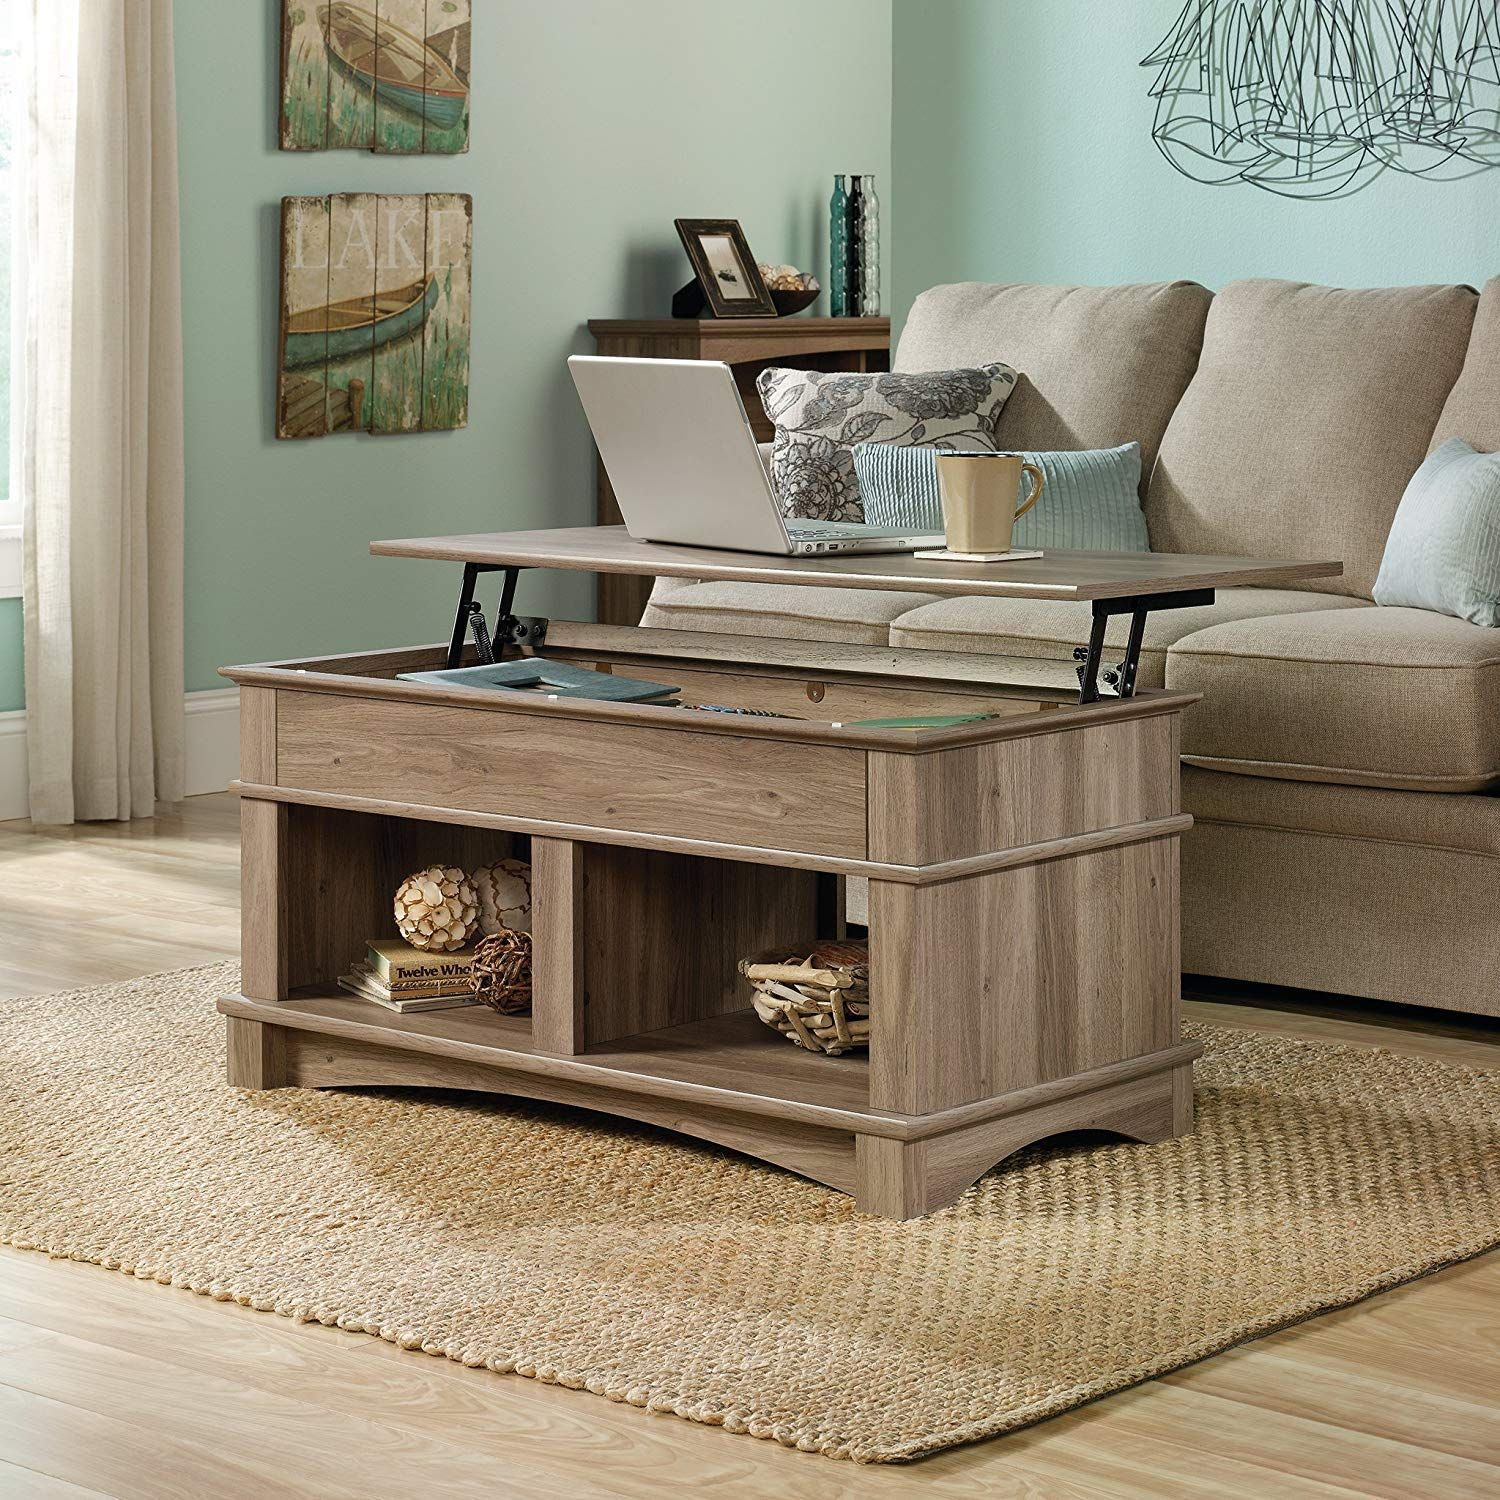 100 Beach Coffee Tables And Coastal Coffee Tables 2020 In 2020 Coffee Table